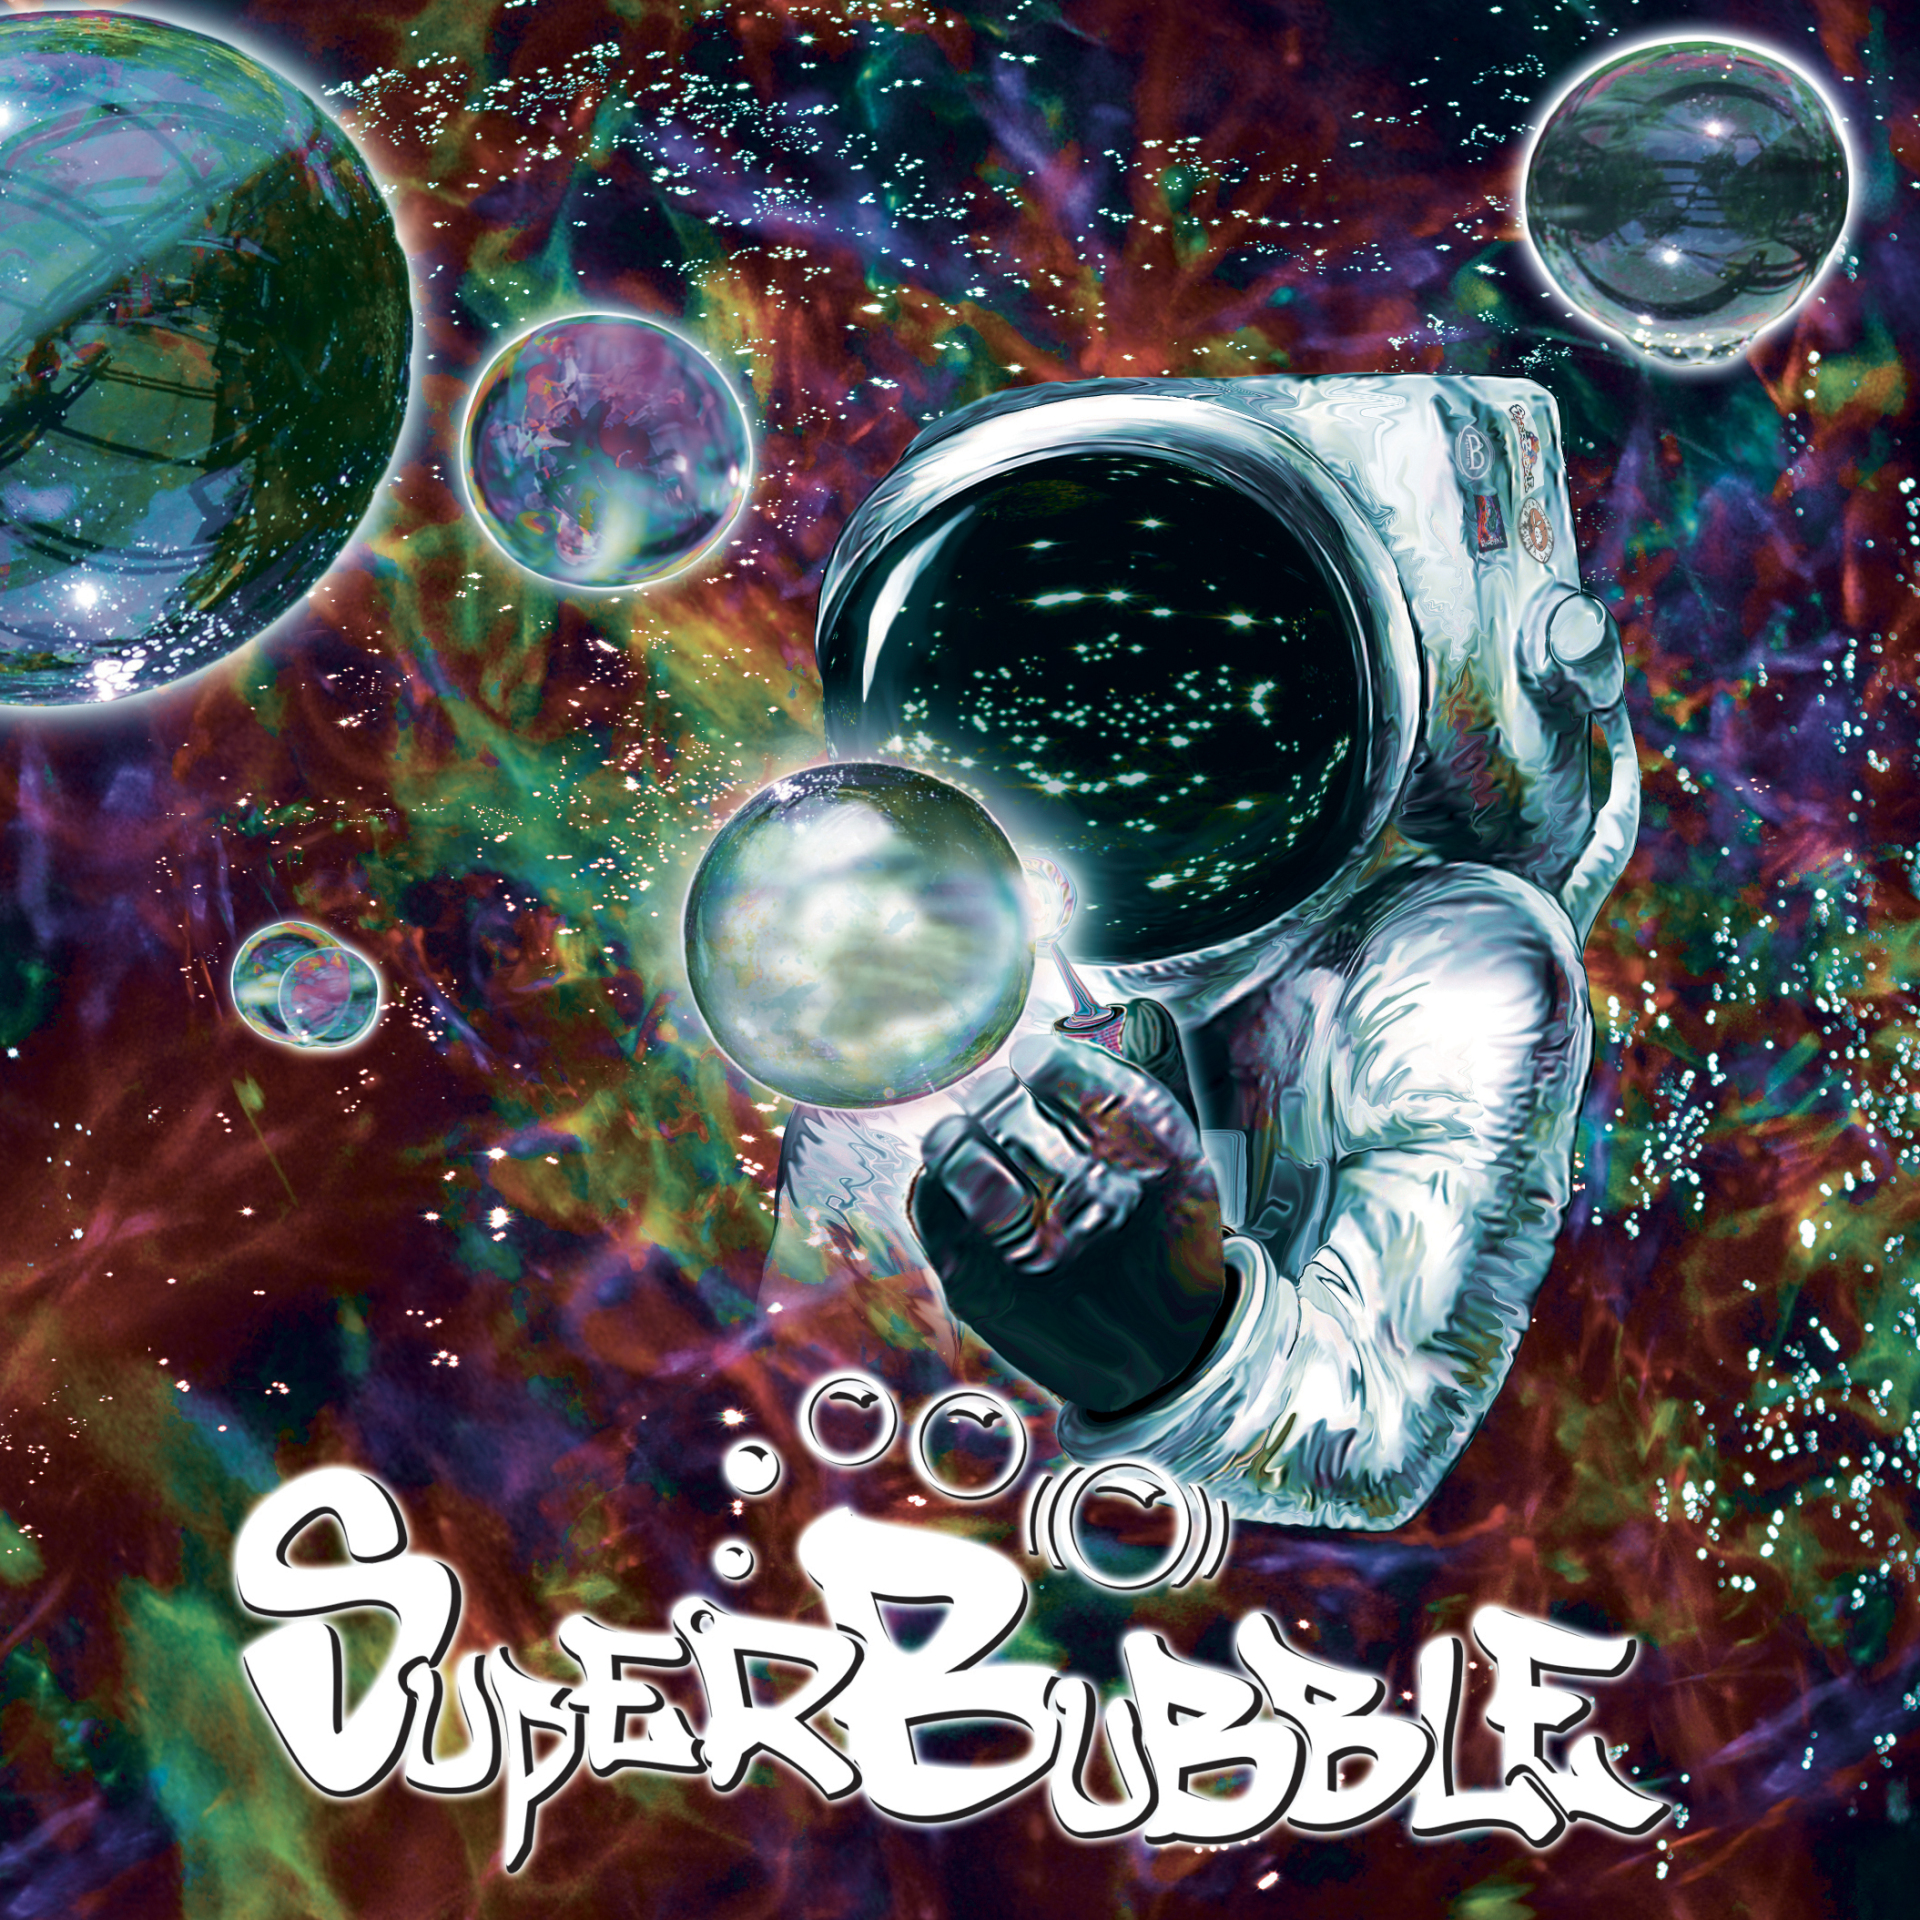 images/bands/SuperBubble.jpg